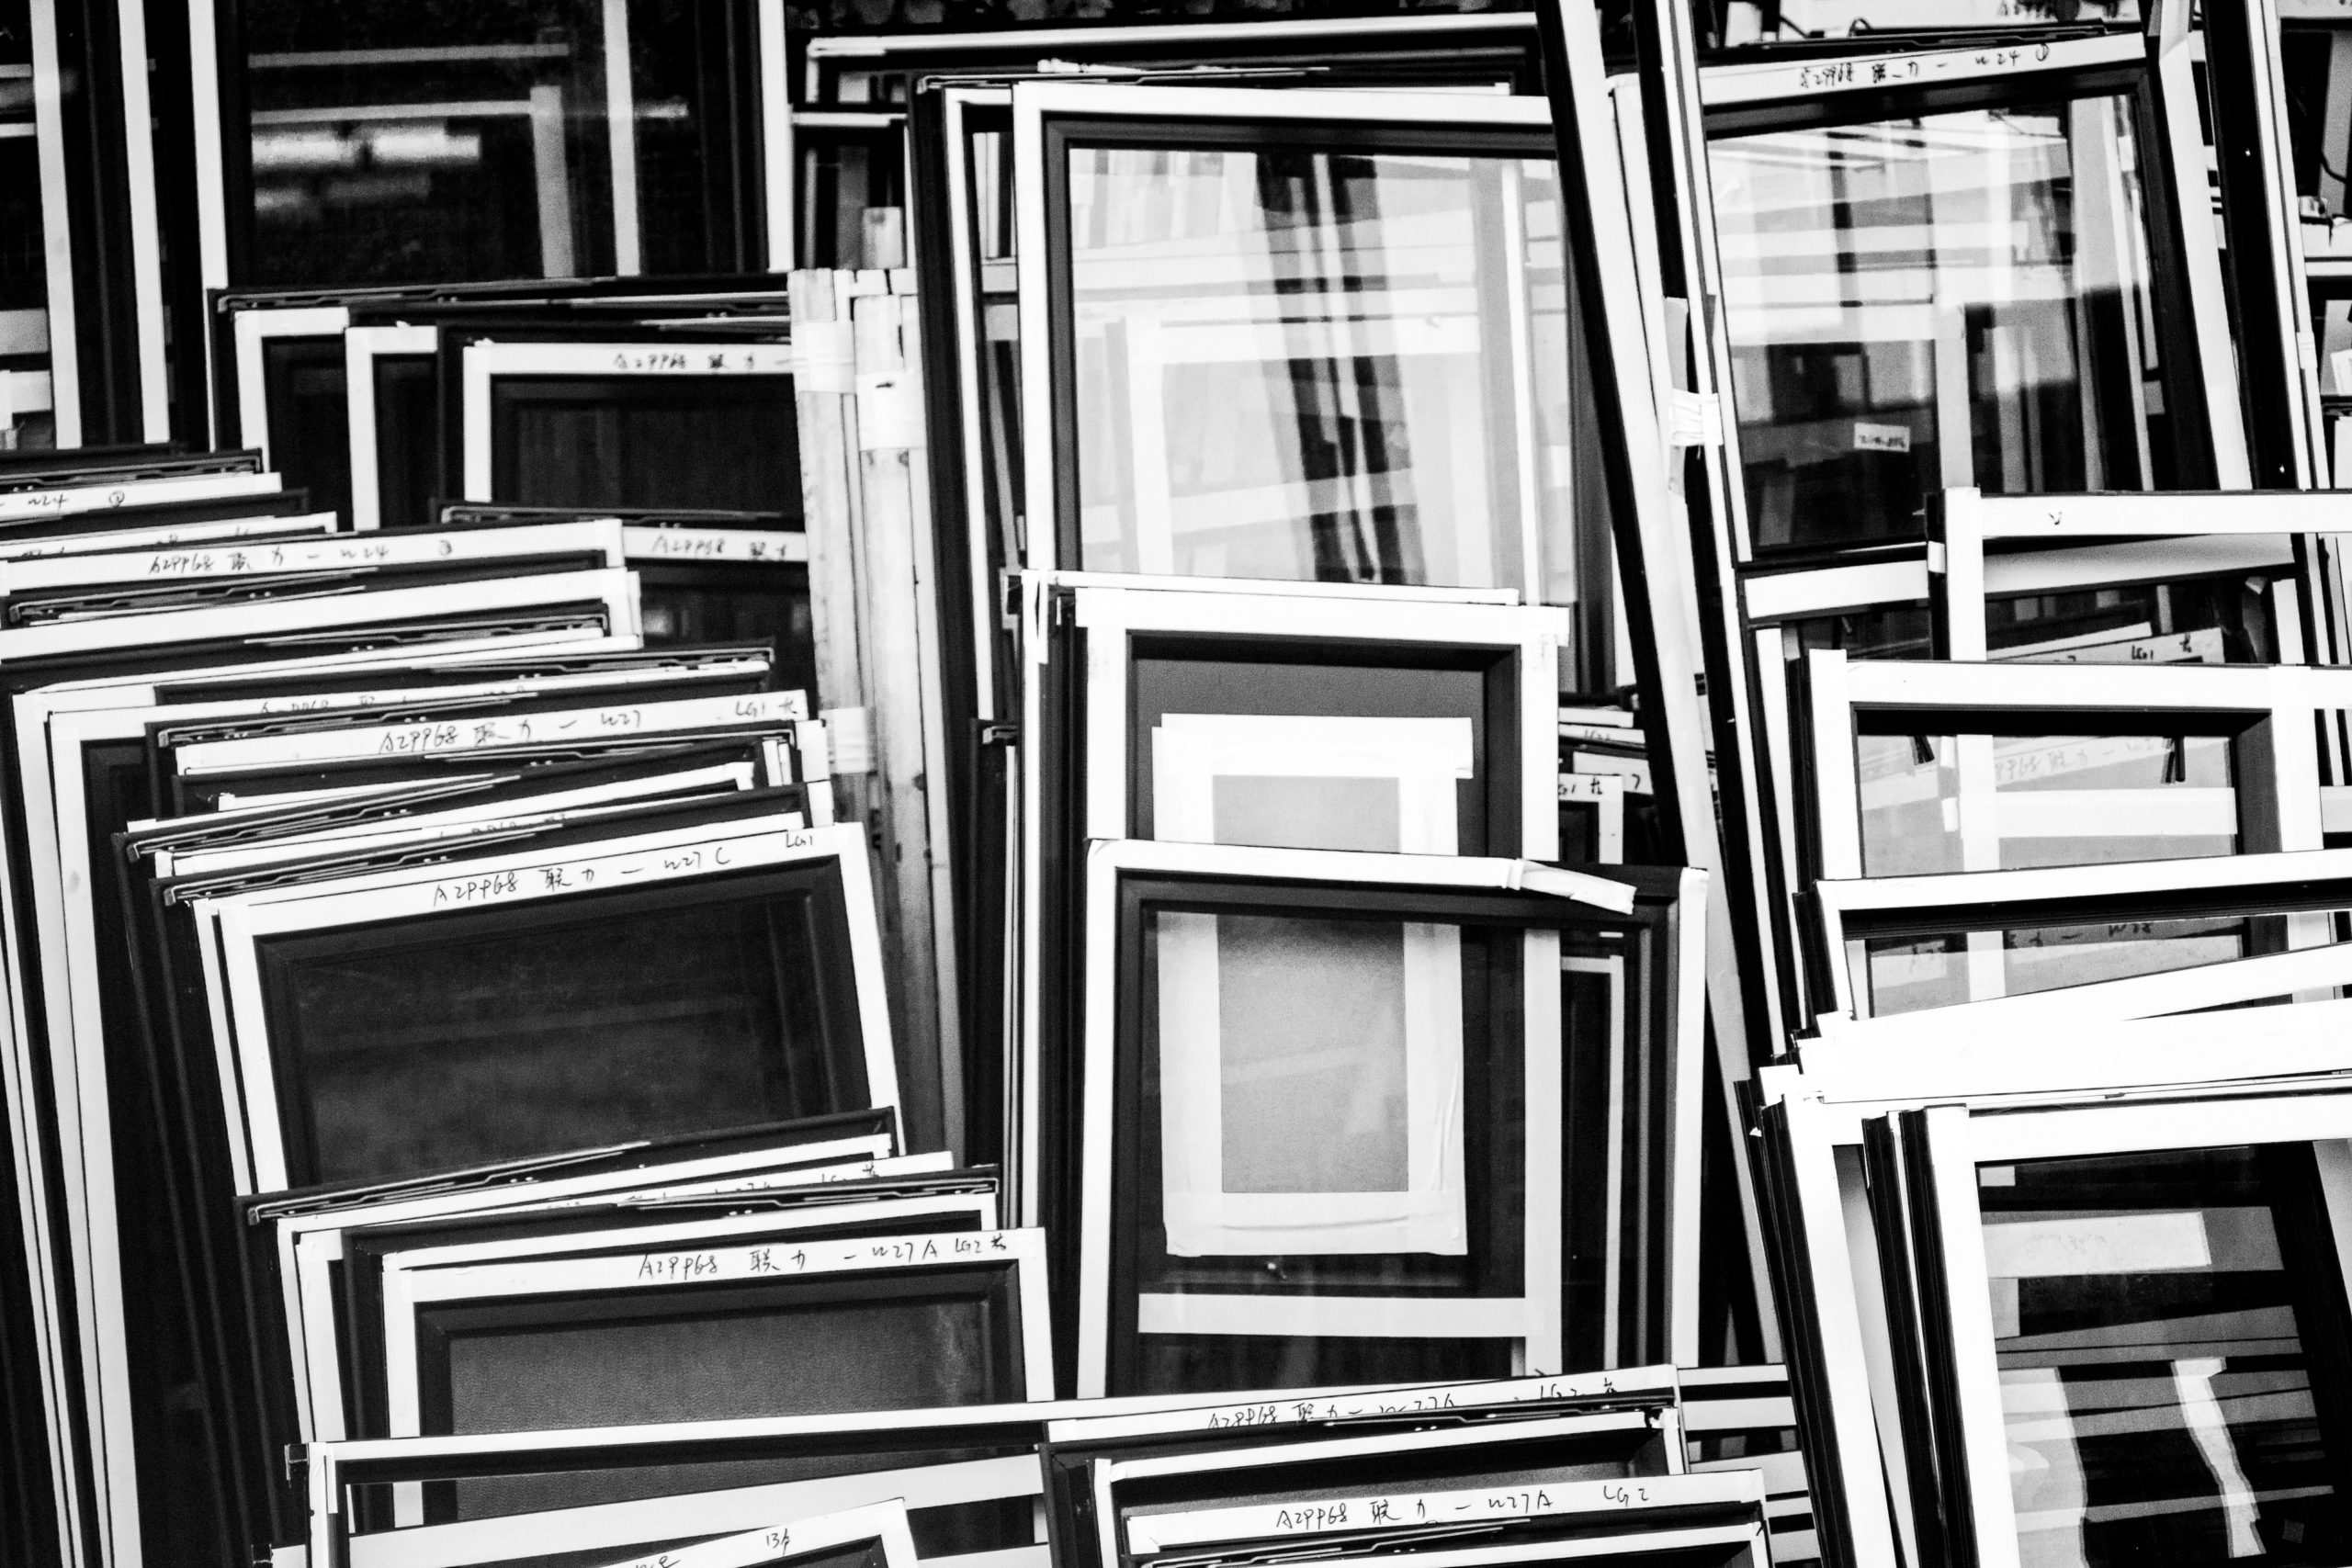 Frames stacked against a building